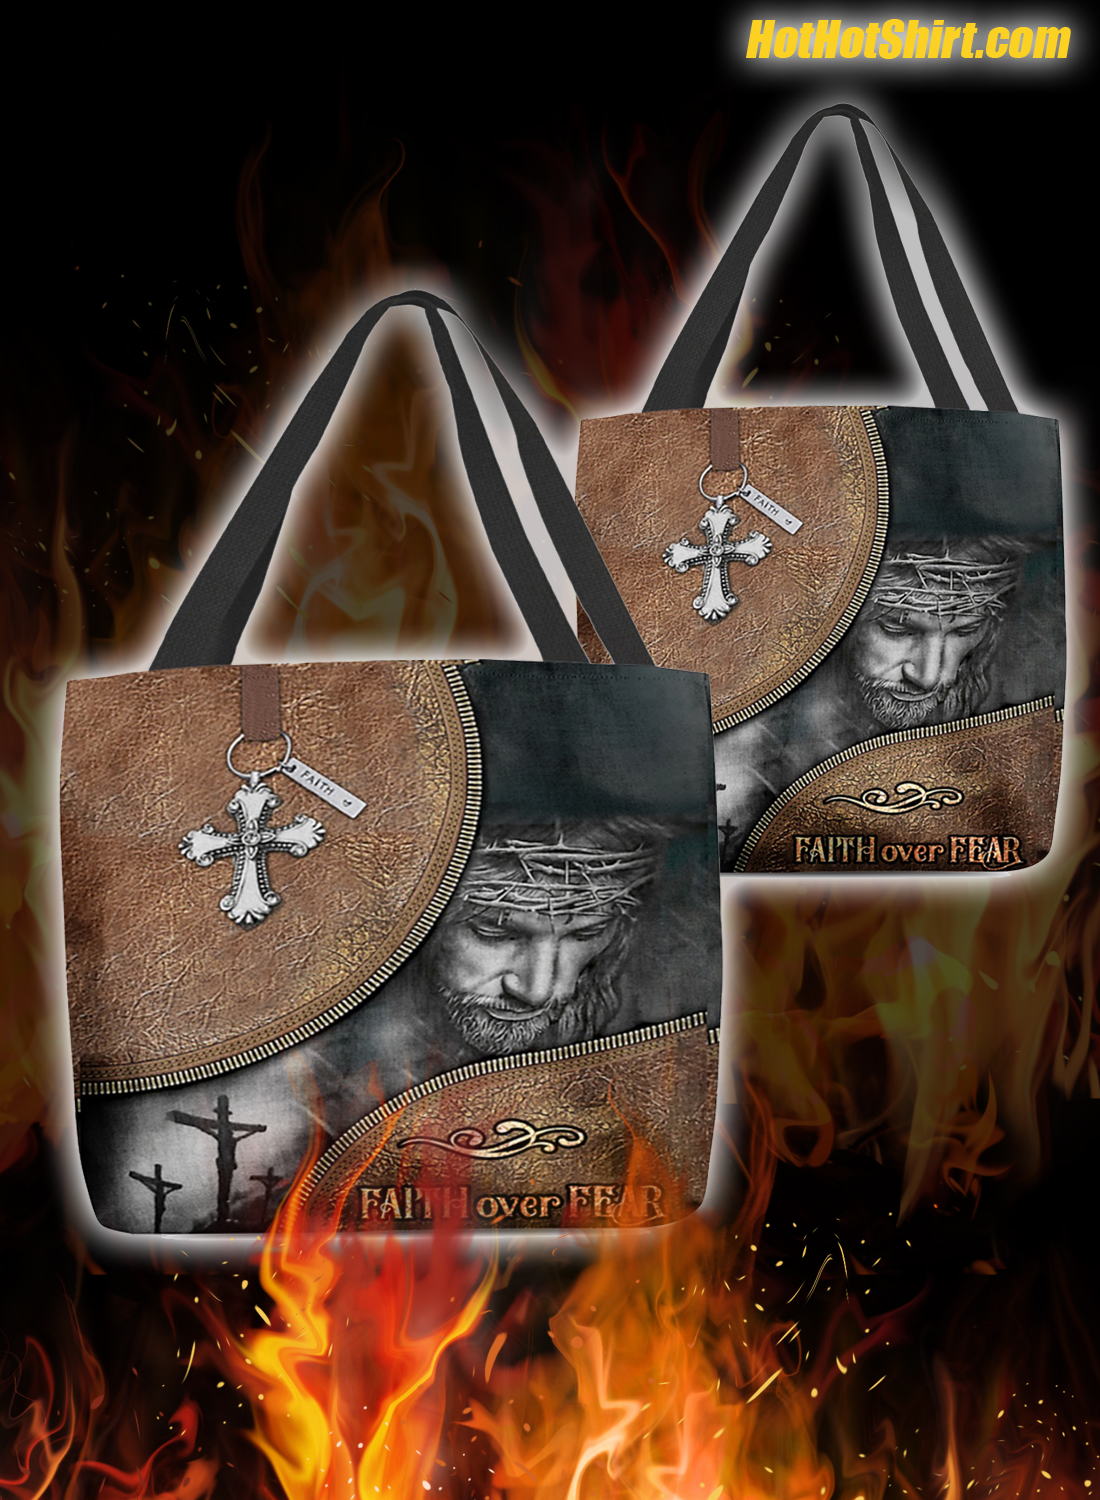 Jesus faith over fear tote bag 3